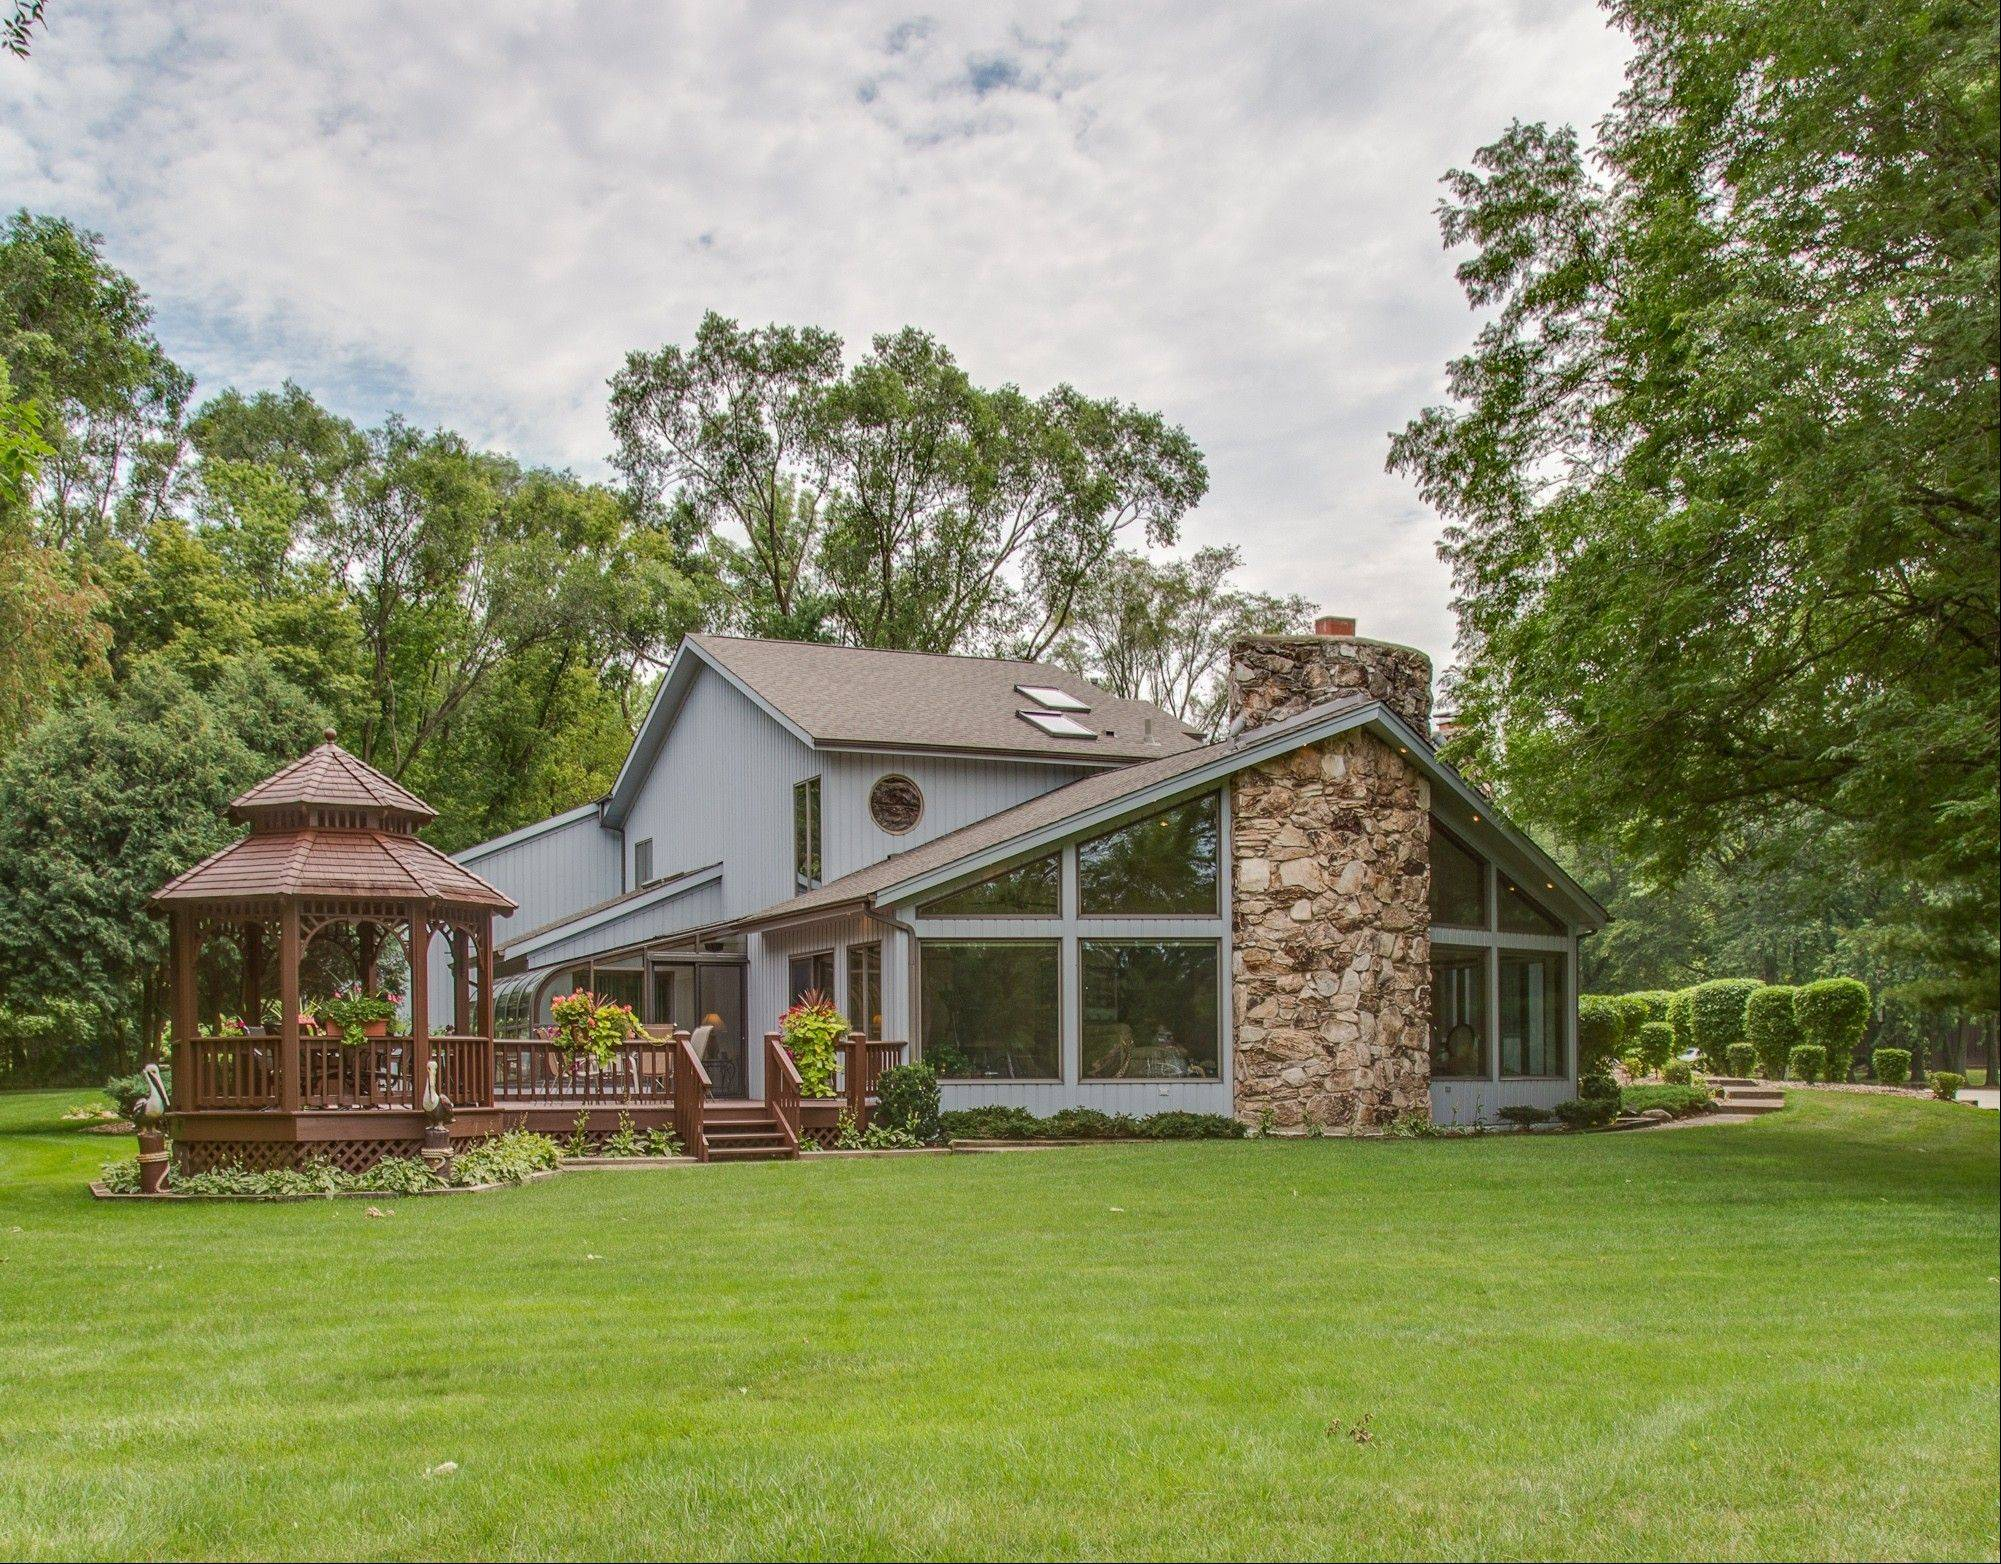 The home is located on a three-quarters acre lot.